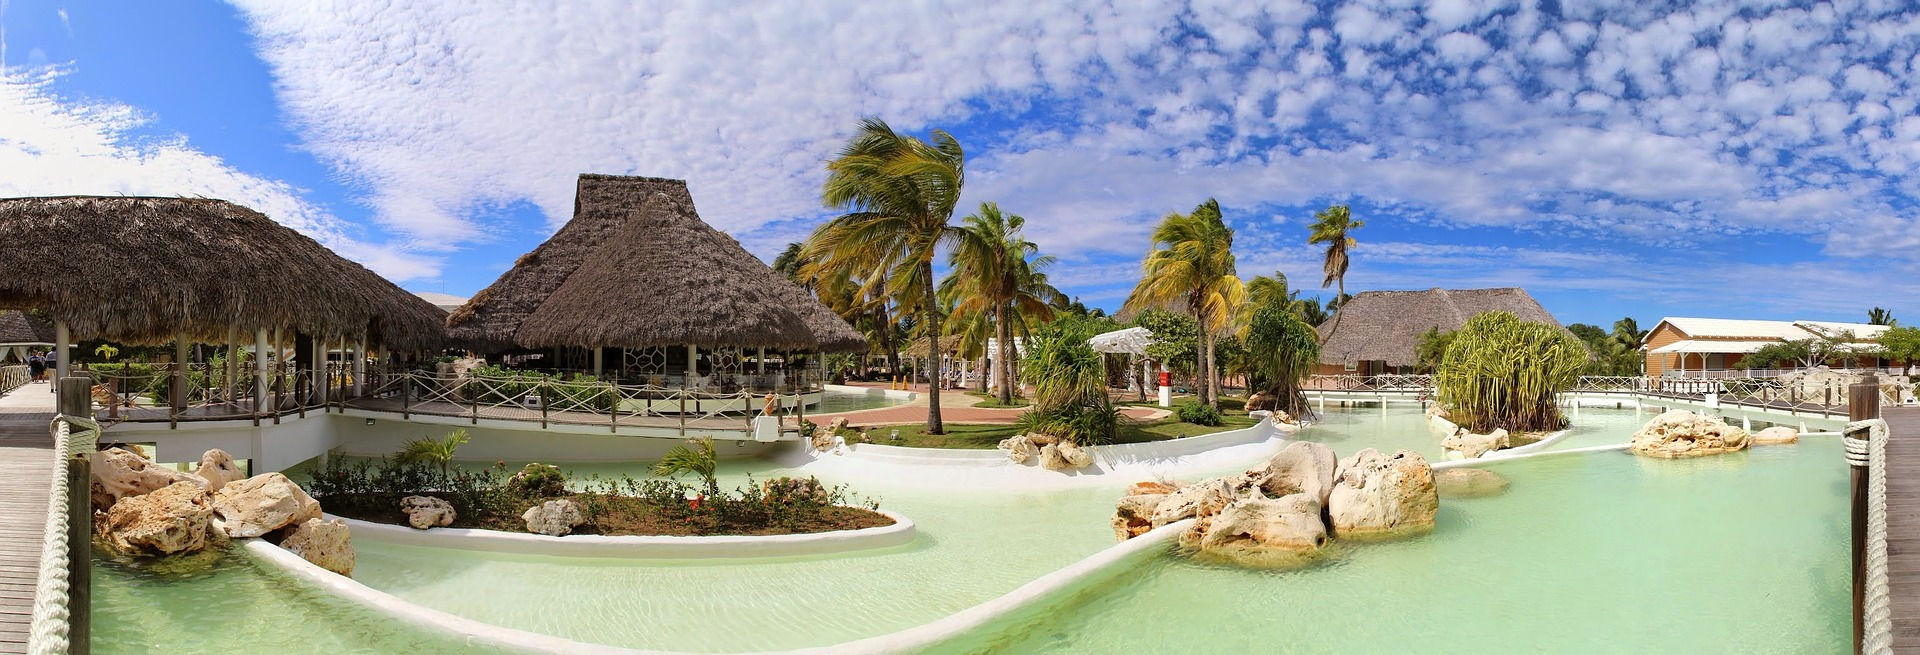 Top 5 family friendly resorts in cuba for Best adults only all inclusive resorts in the world